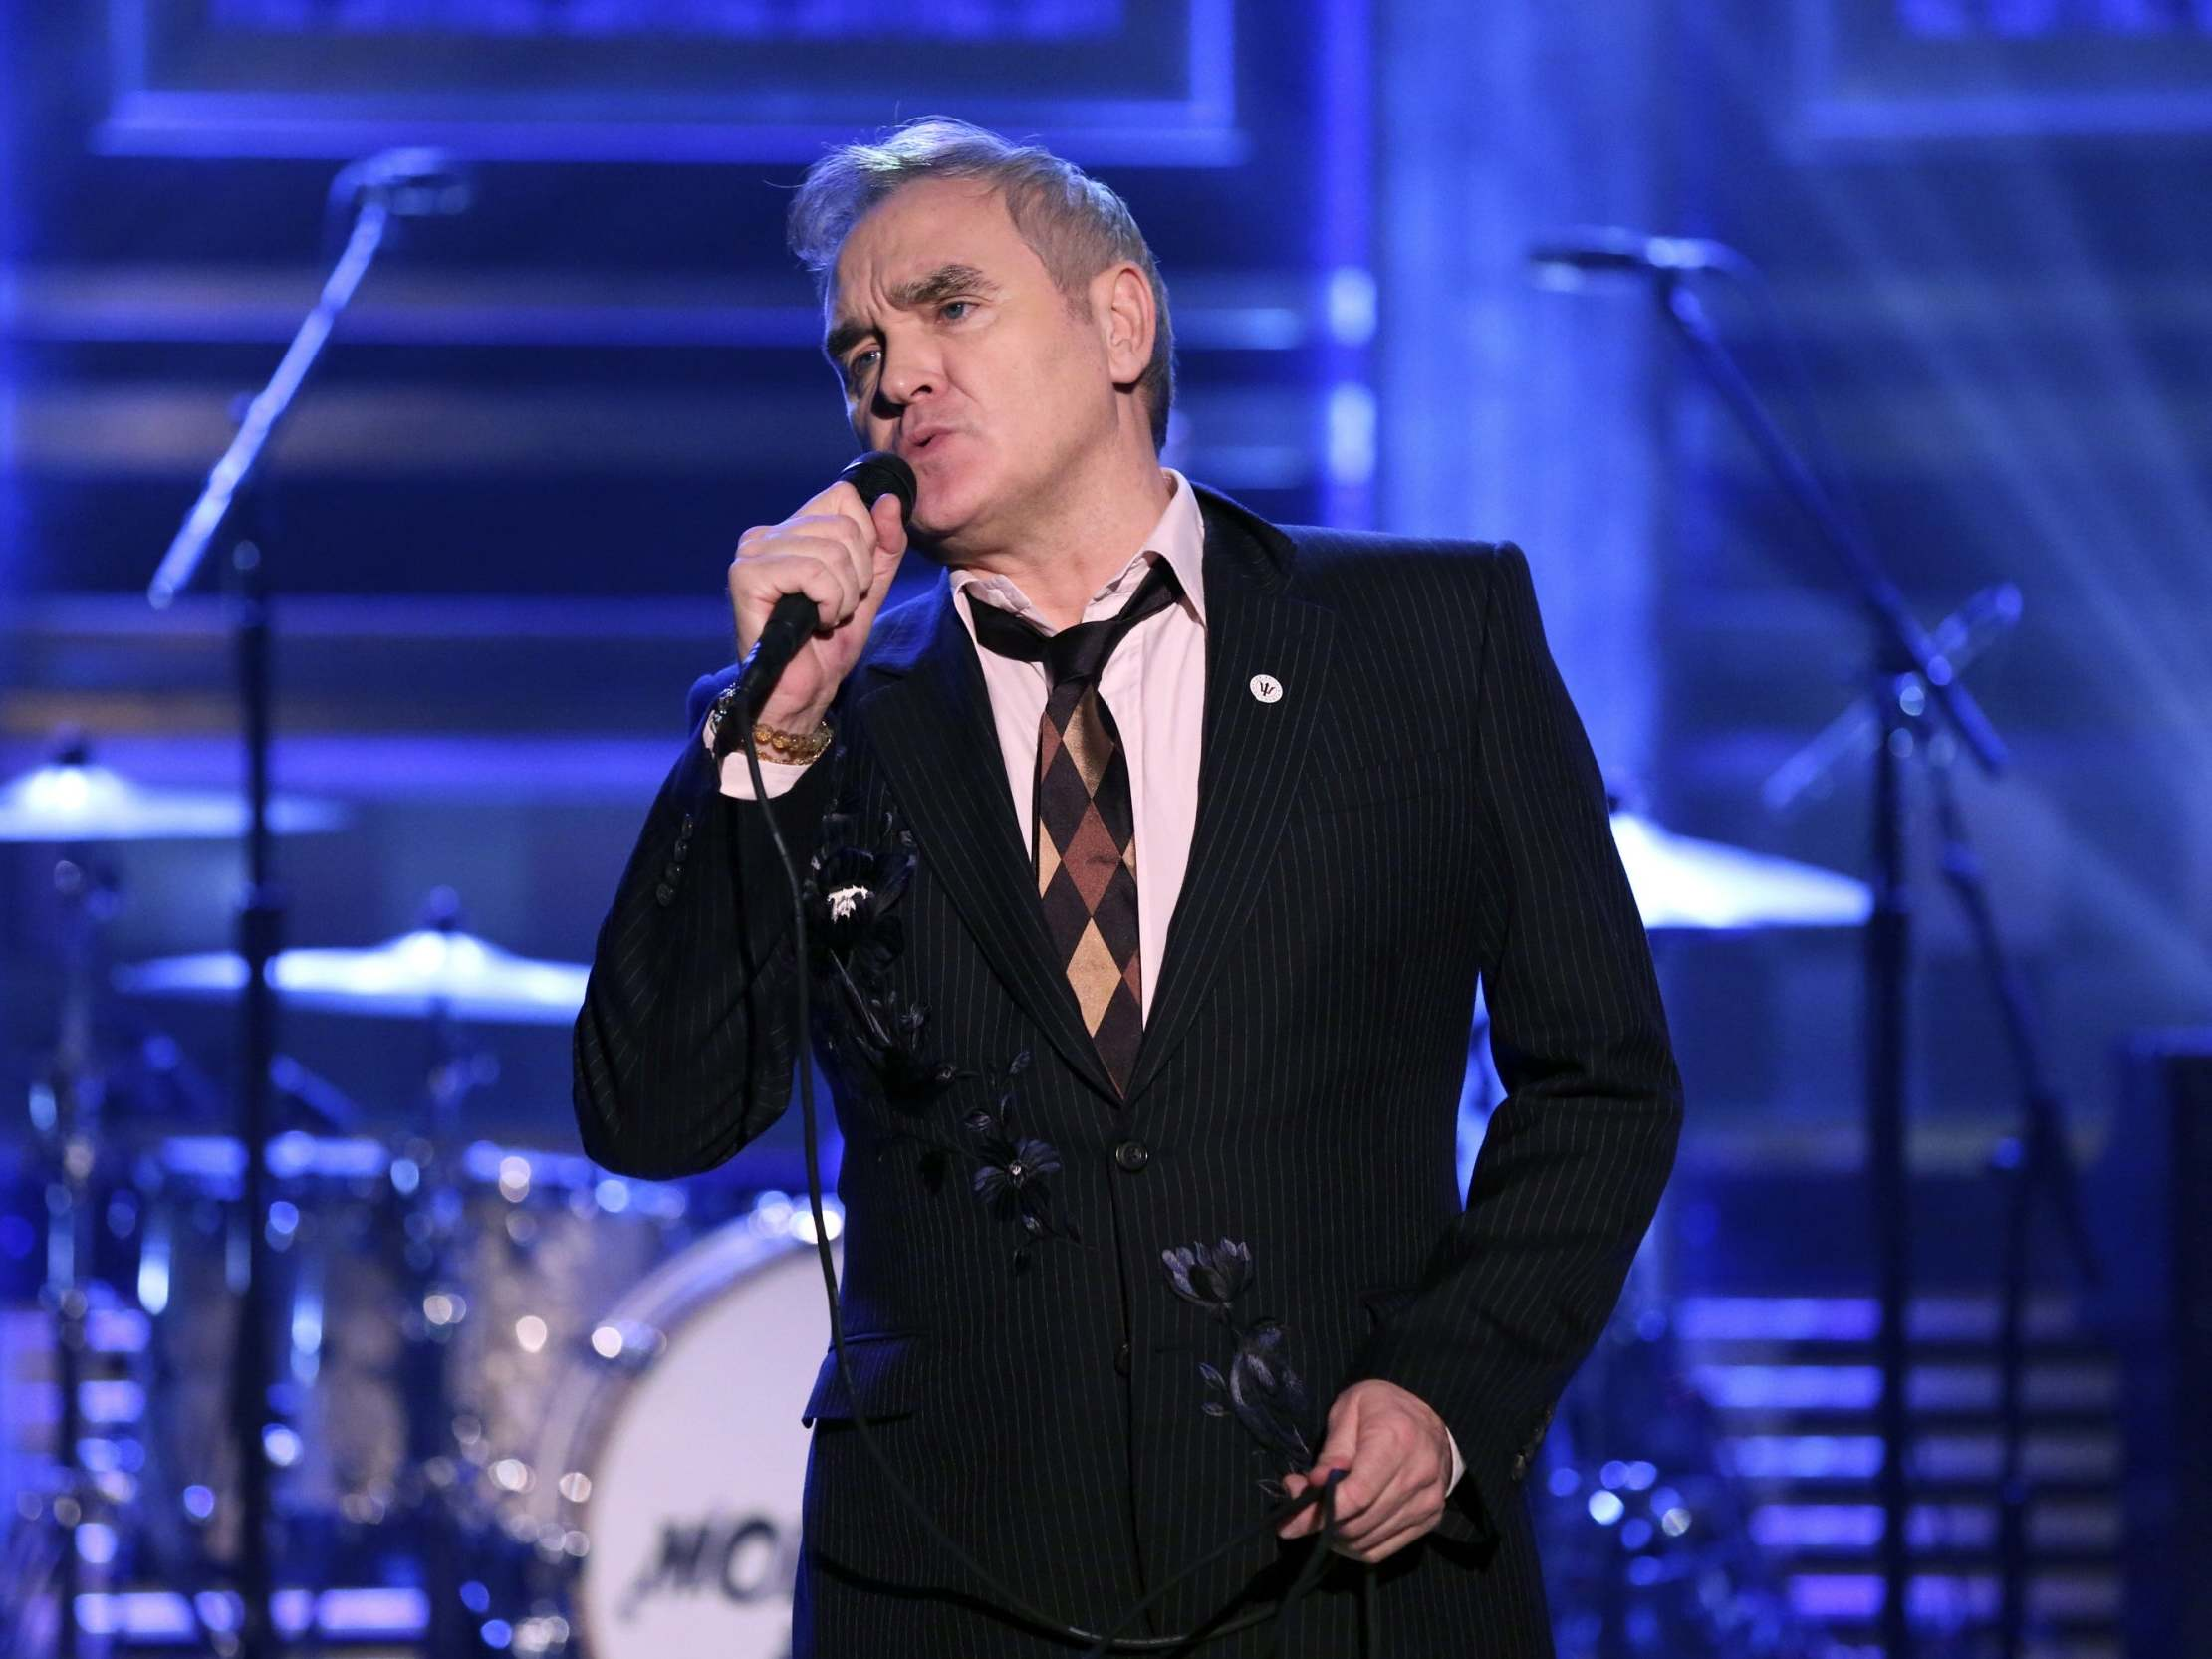 Morrissey reaffirms support for far-right party and claims 'everyone…